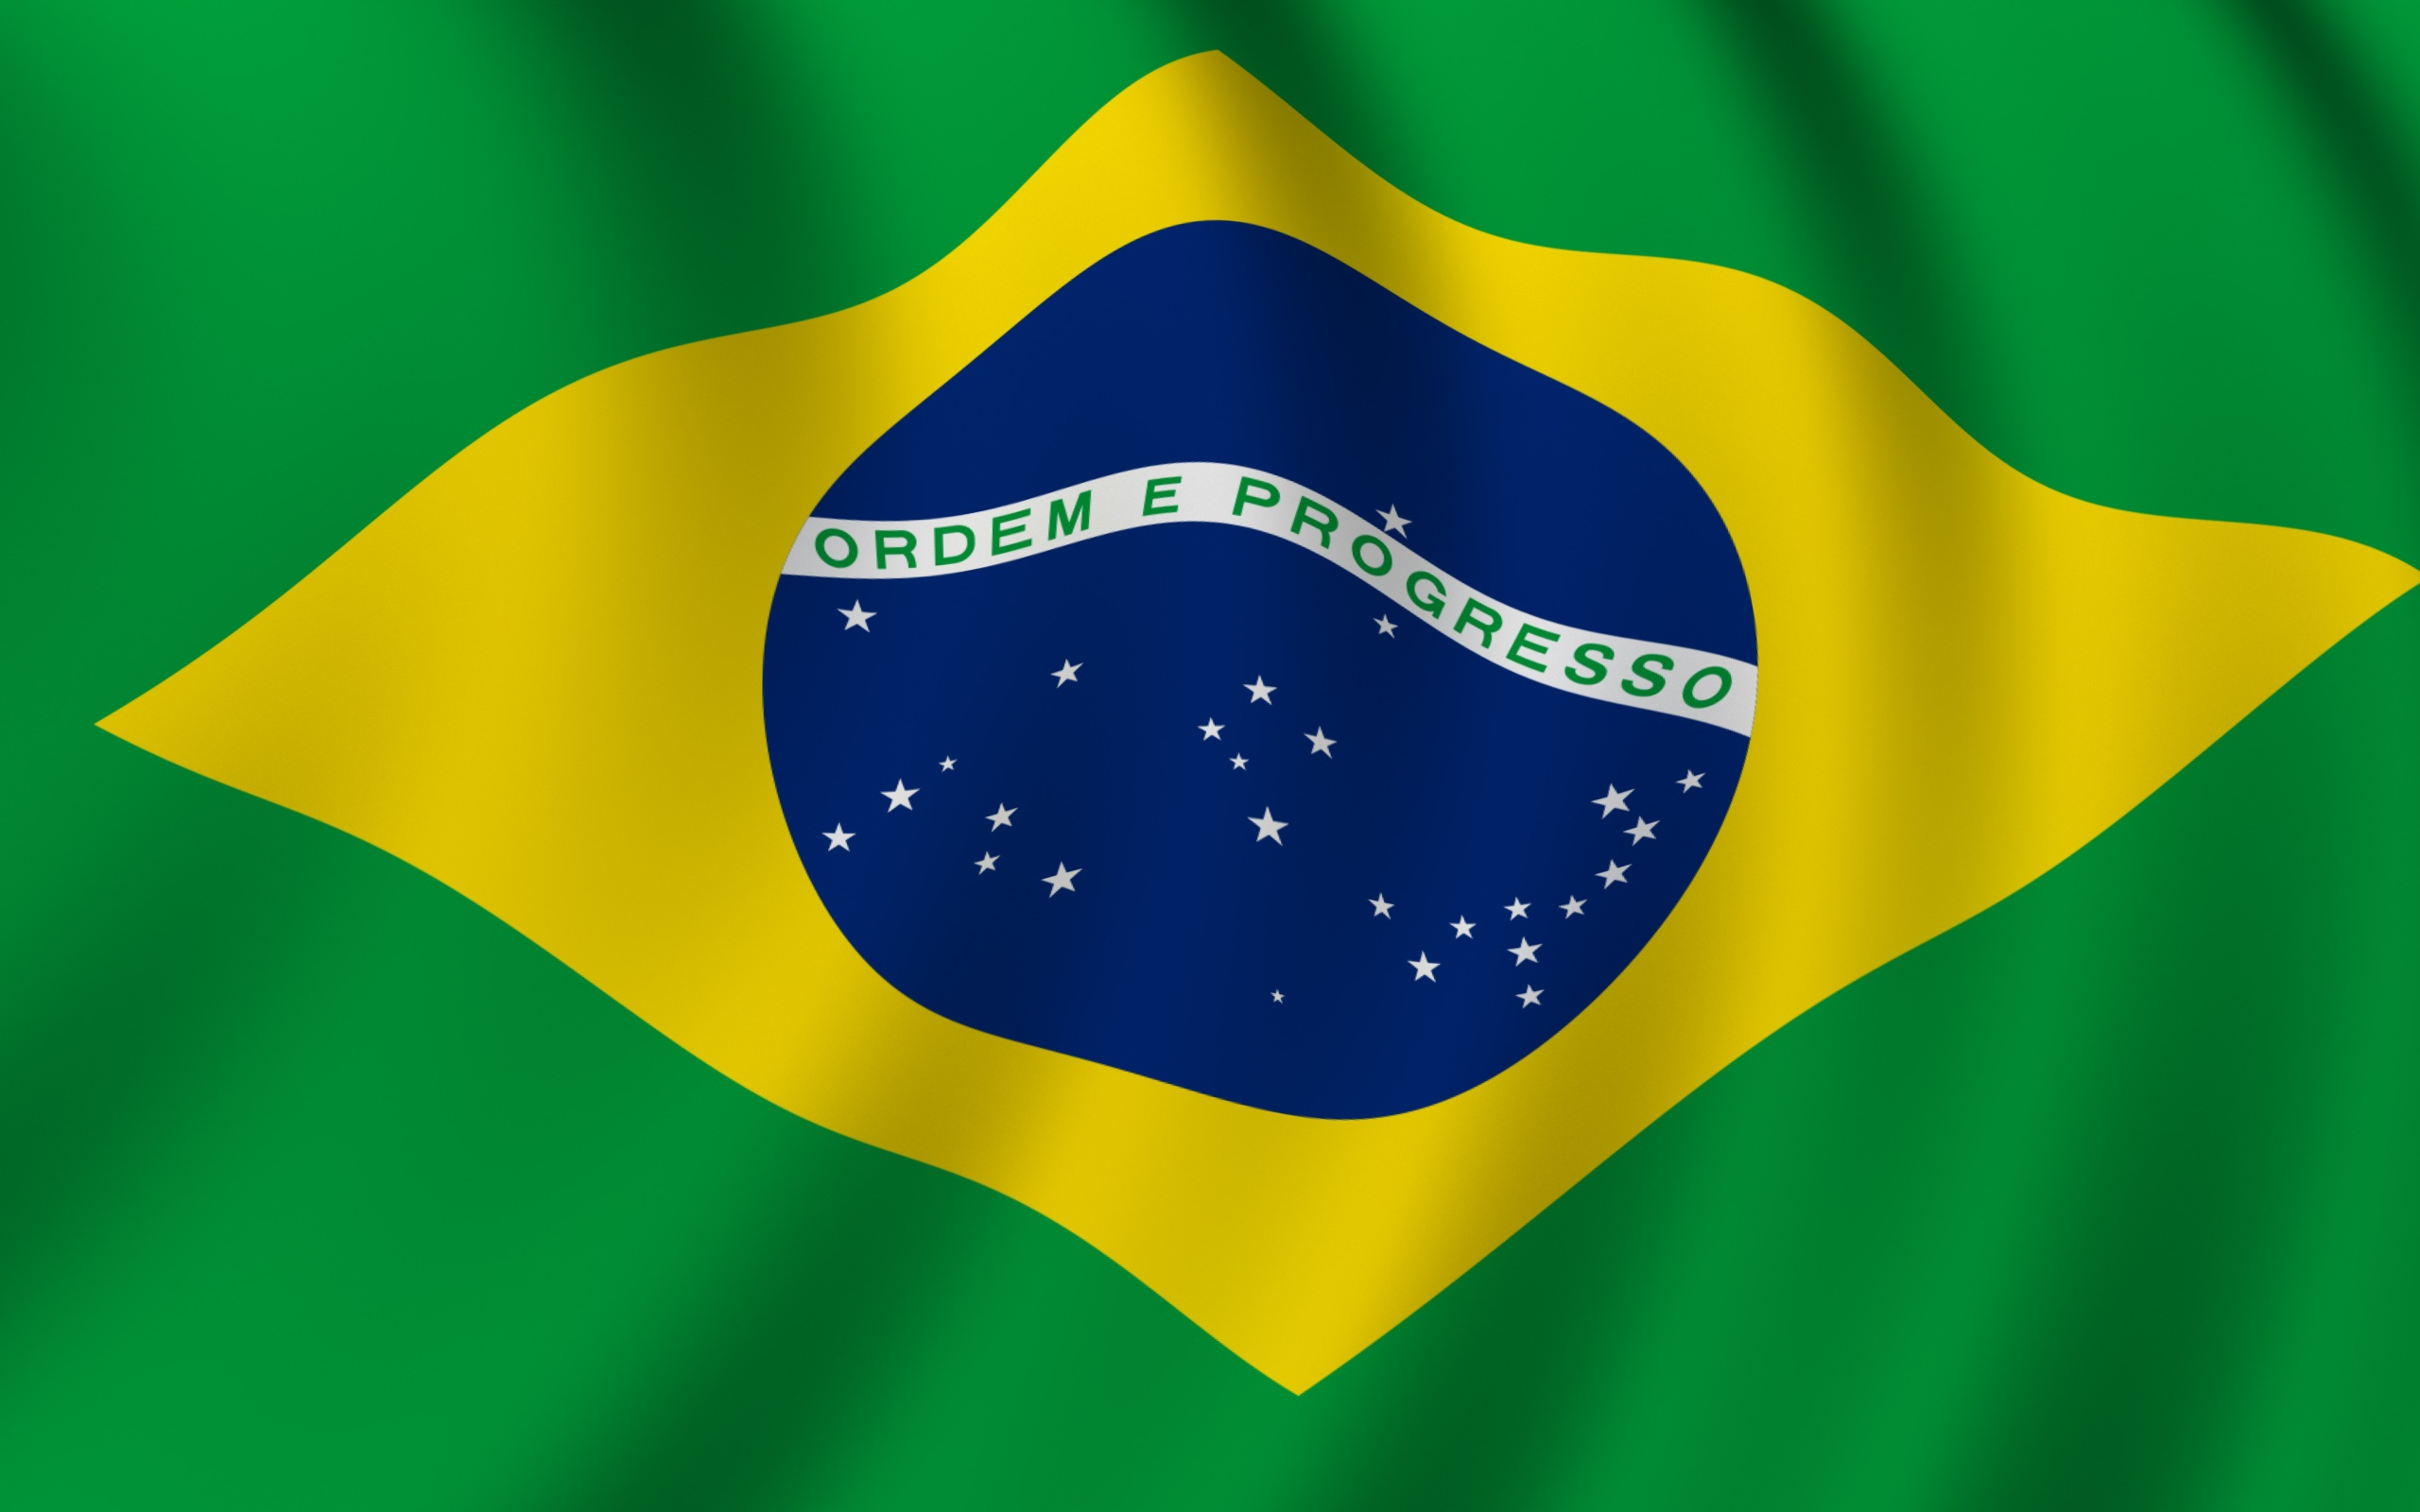 Flag Of Brazil Backgrounds on Wallpapers Vista